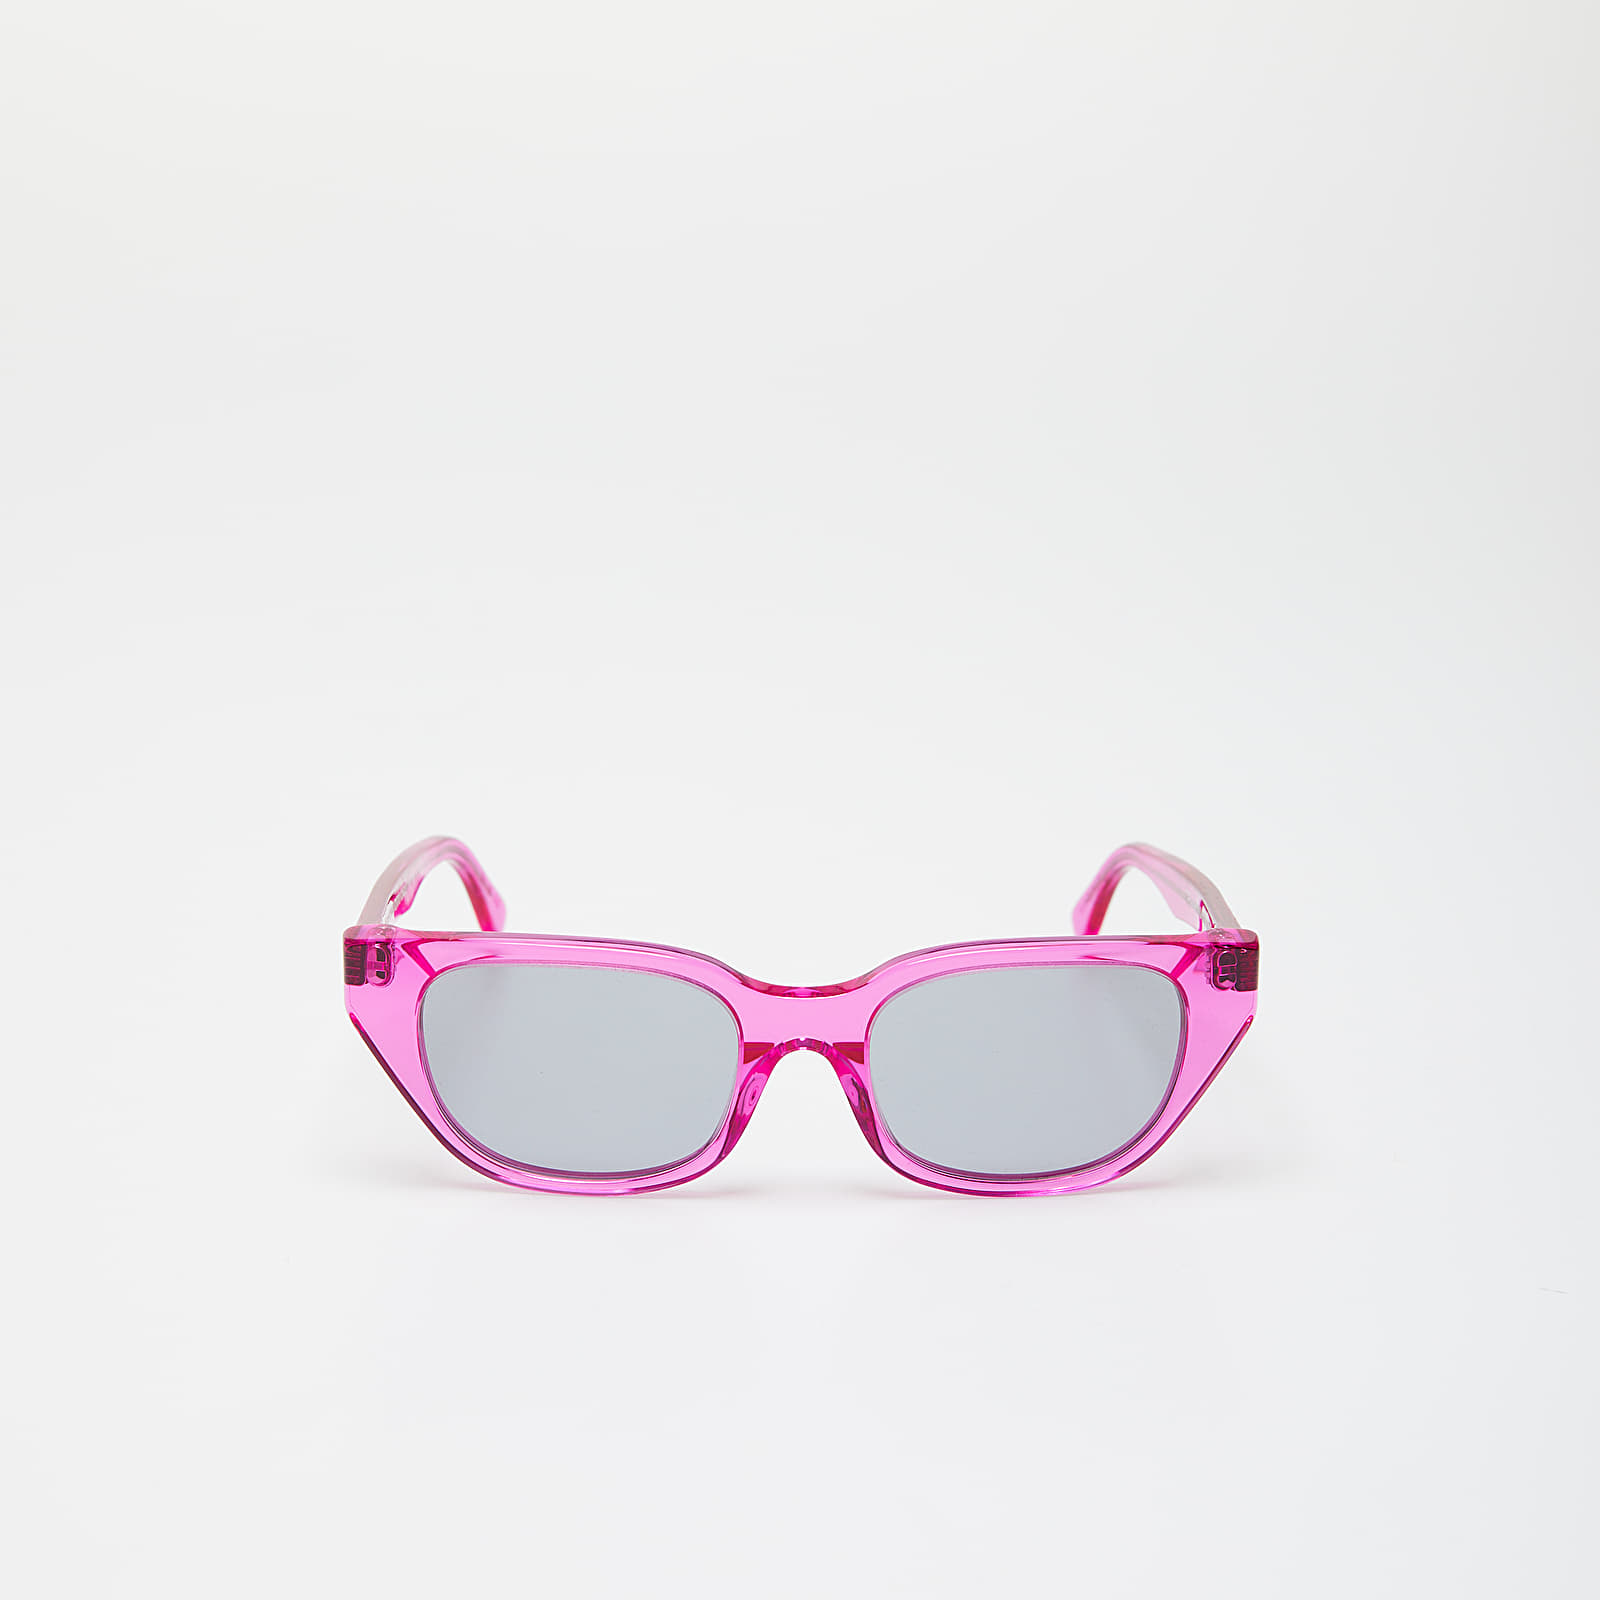 RETROSUPERFUTURE Cento Sunglasses